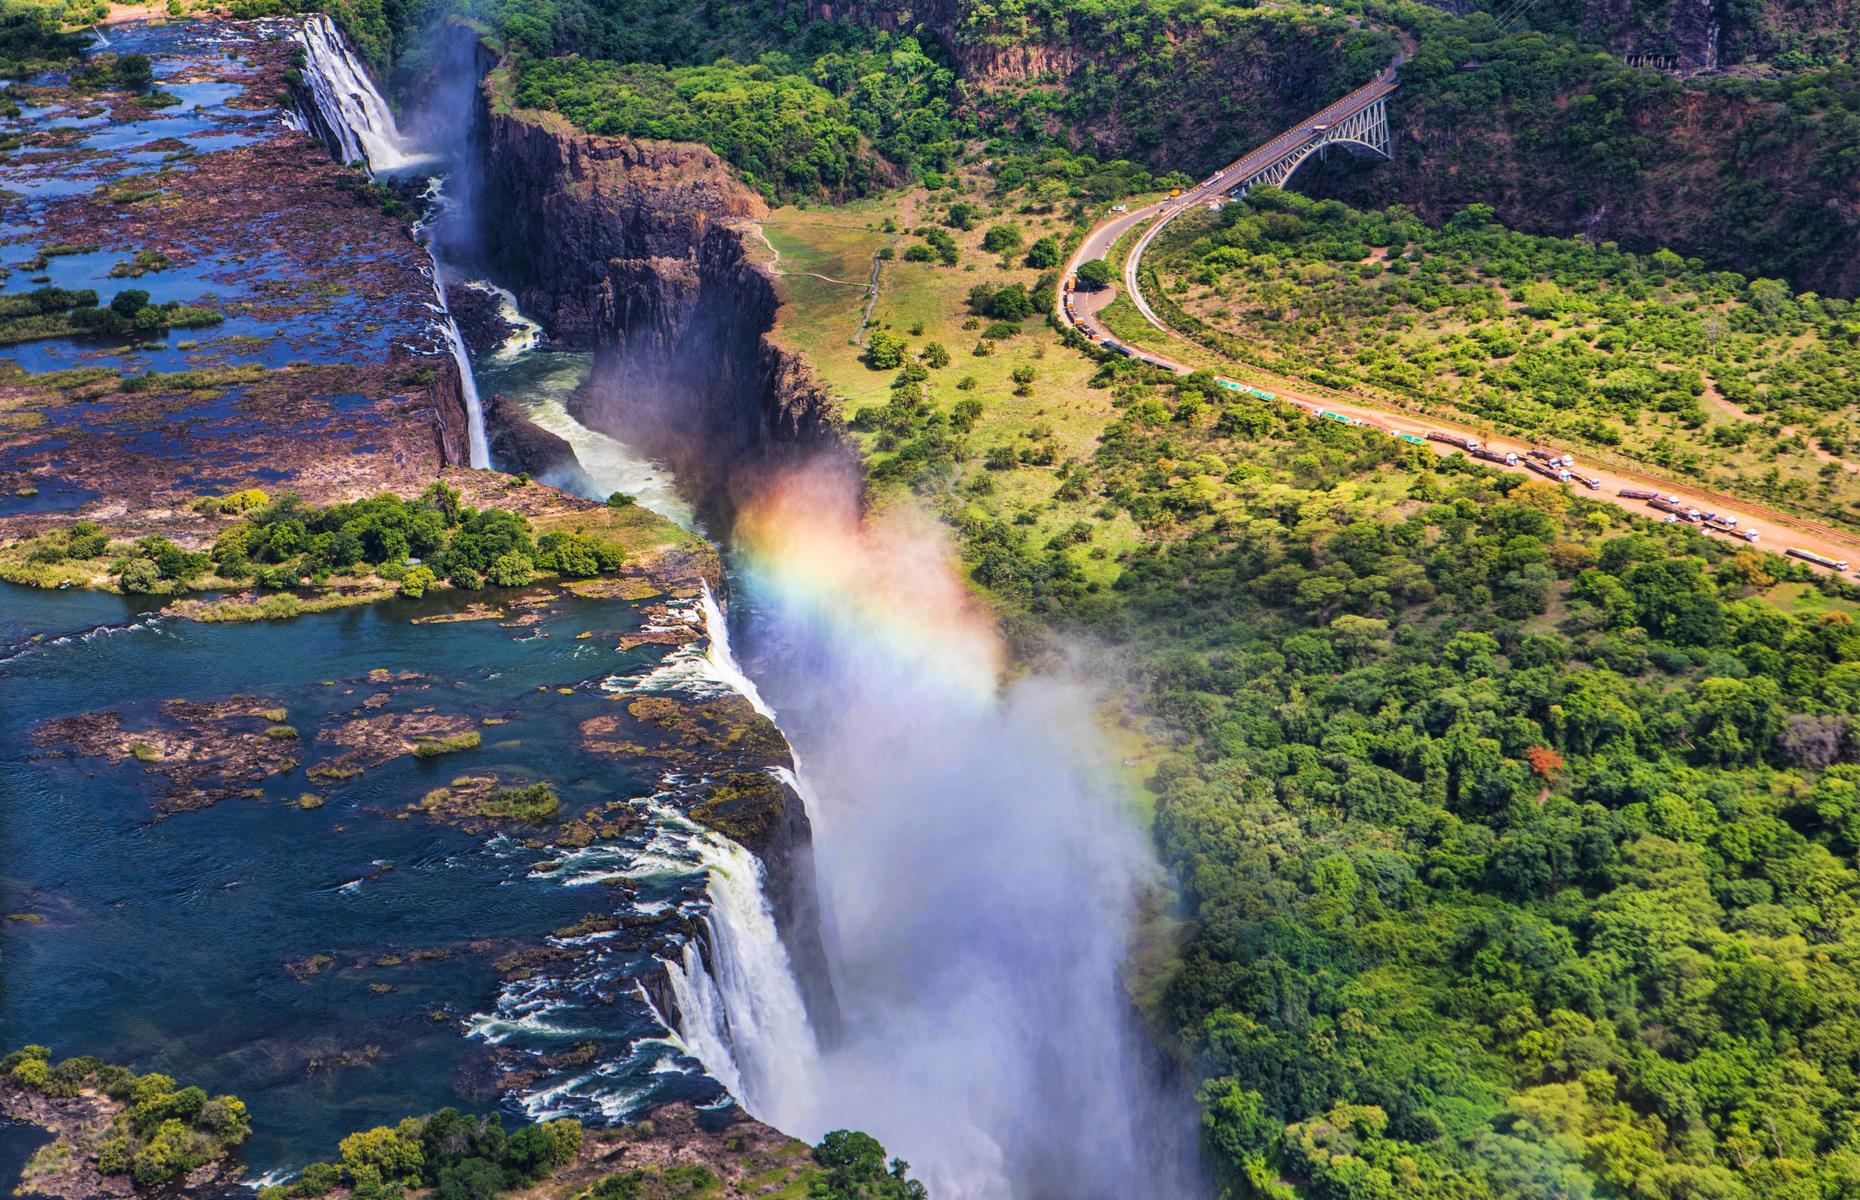 Slide 7 of 31: A mighty sight on the mighty Zambezi River, Victoria Falls is more than 5,500 feet (1,700m) wide and has a sheer drop of 355 feet (108m). In other words, it's an incredible sight – and has a roar to match. The thundering sound as the water crashes down the near-vertical drop is loud and creates such a veil of mist that the Kalolo-Lozi people named the falls Mosi-oa-Tunya, or 'The Smoke That Thunders'.